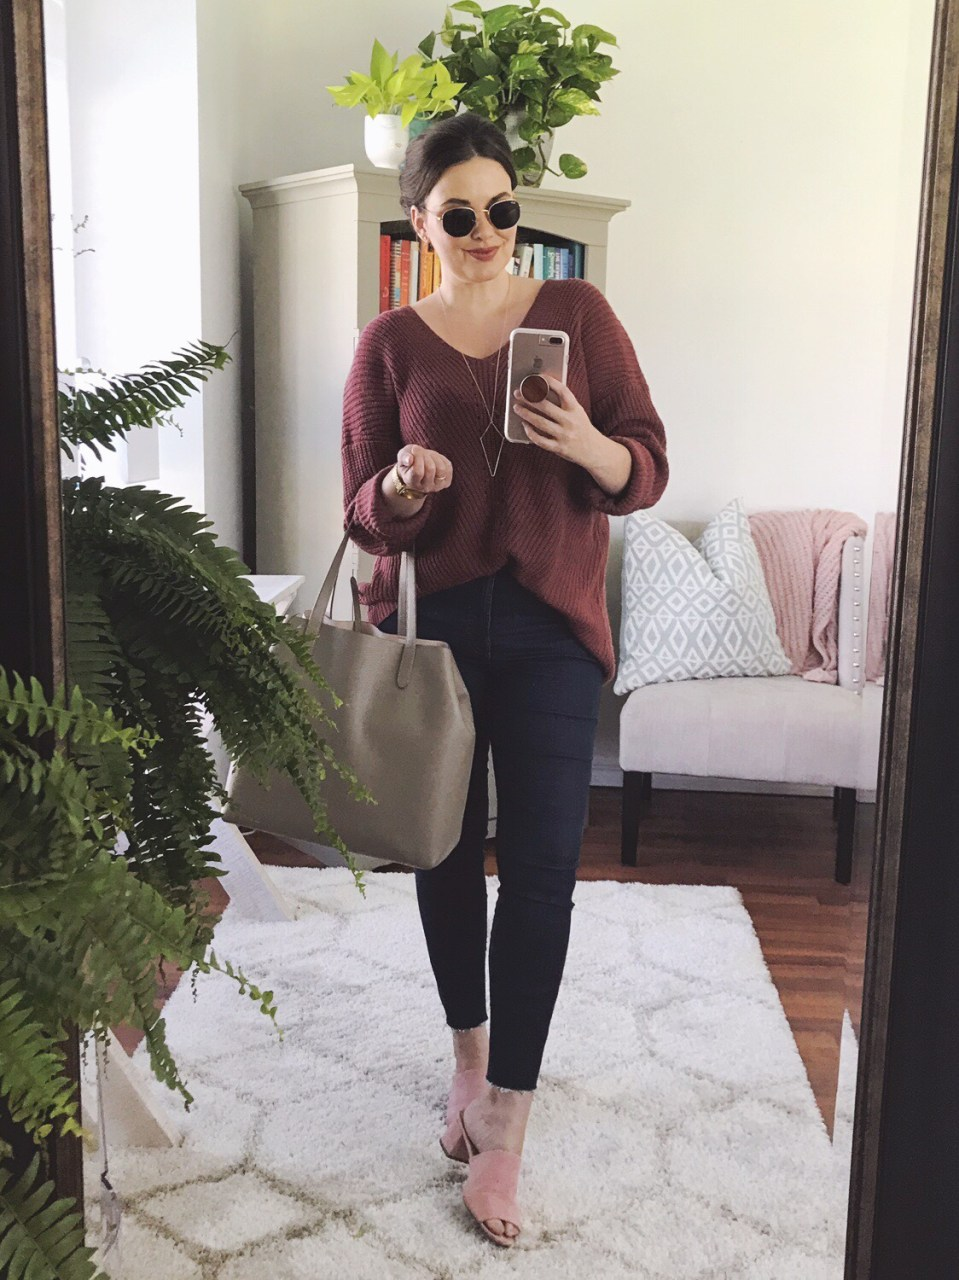 Style blogger wearing over-sized mauve sweater with Everlane Authentic Stretch Hi-Rise skinny jeans and blush pink suede mules and Ray-Ban hexagonal sunglasses, carrying Cuyana structured leather tote bag.